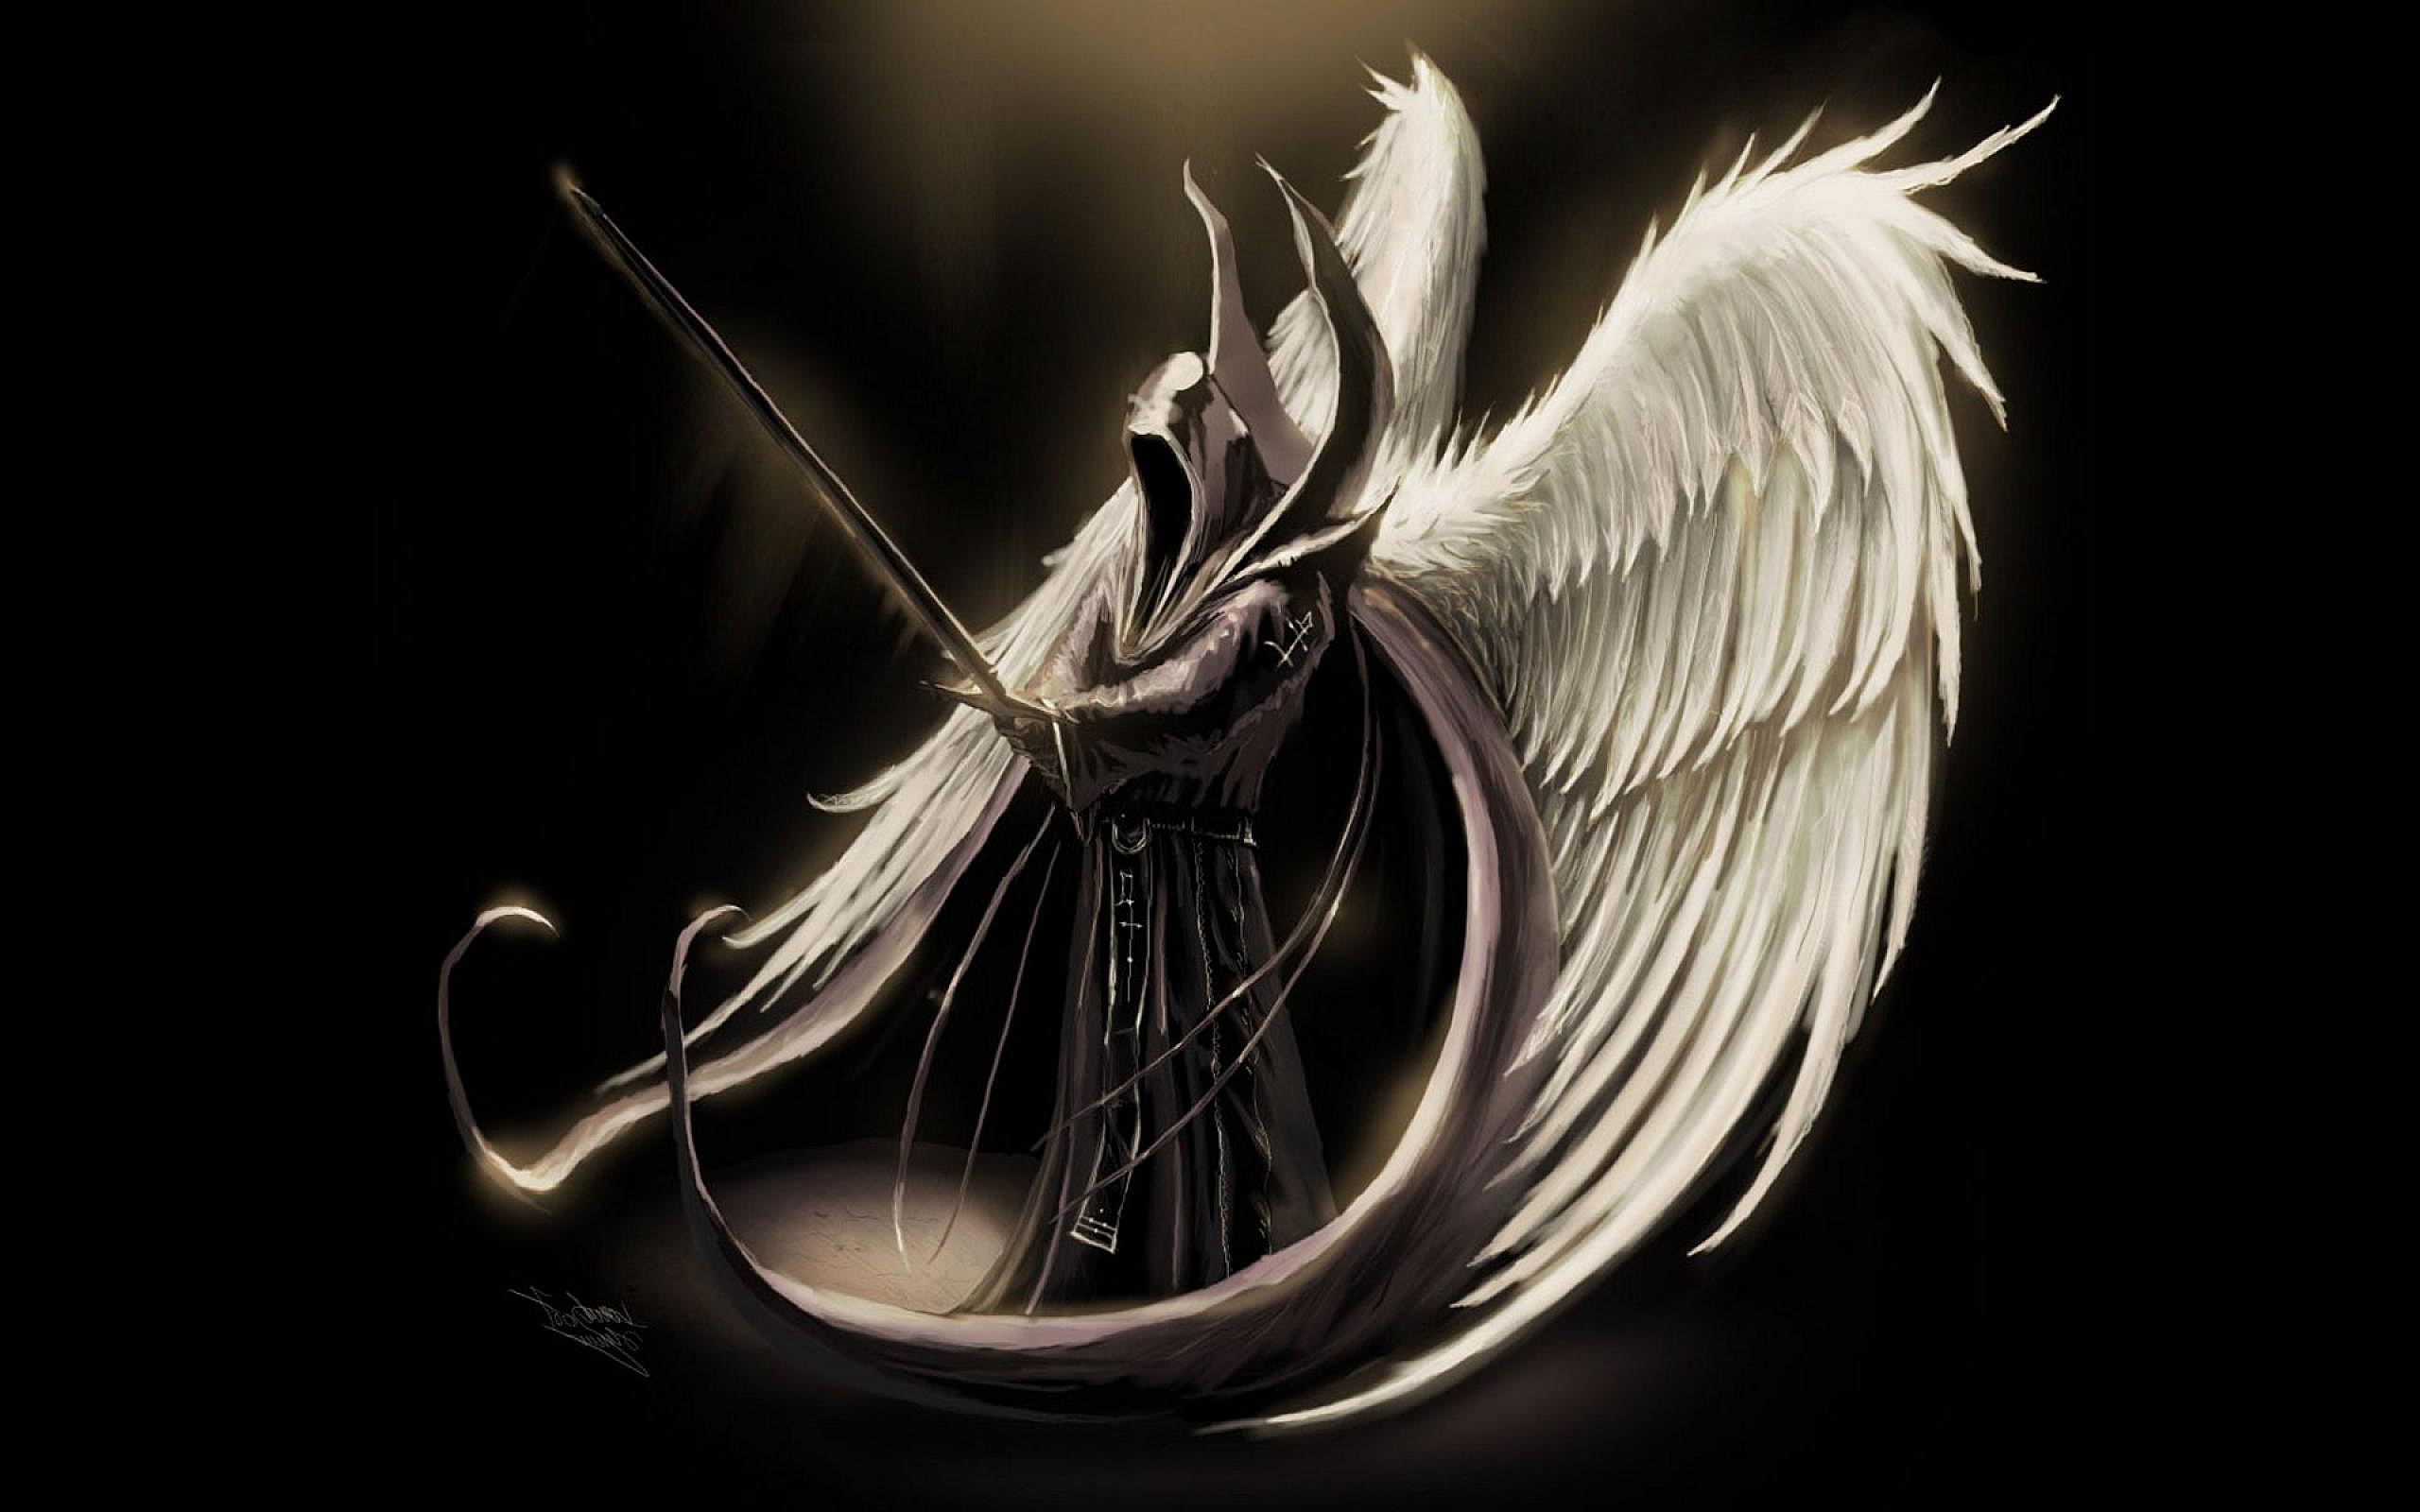 what diablo archangel are you